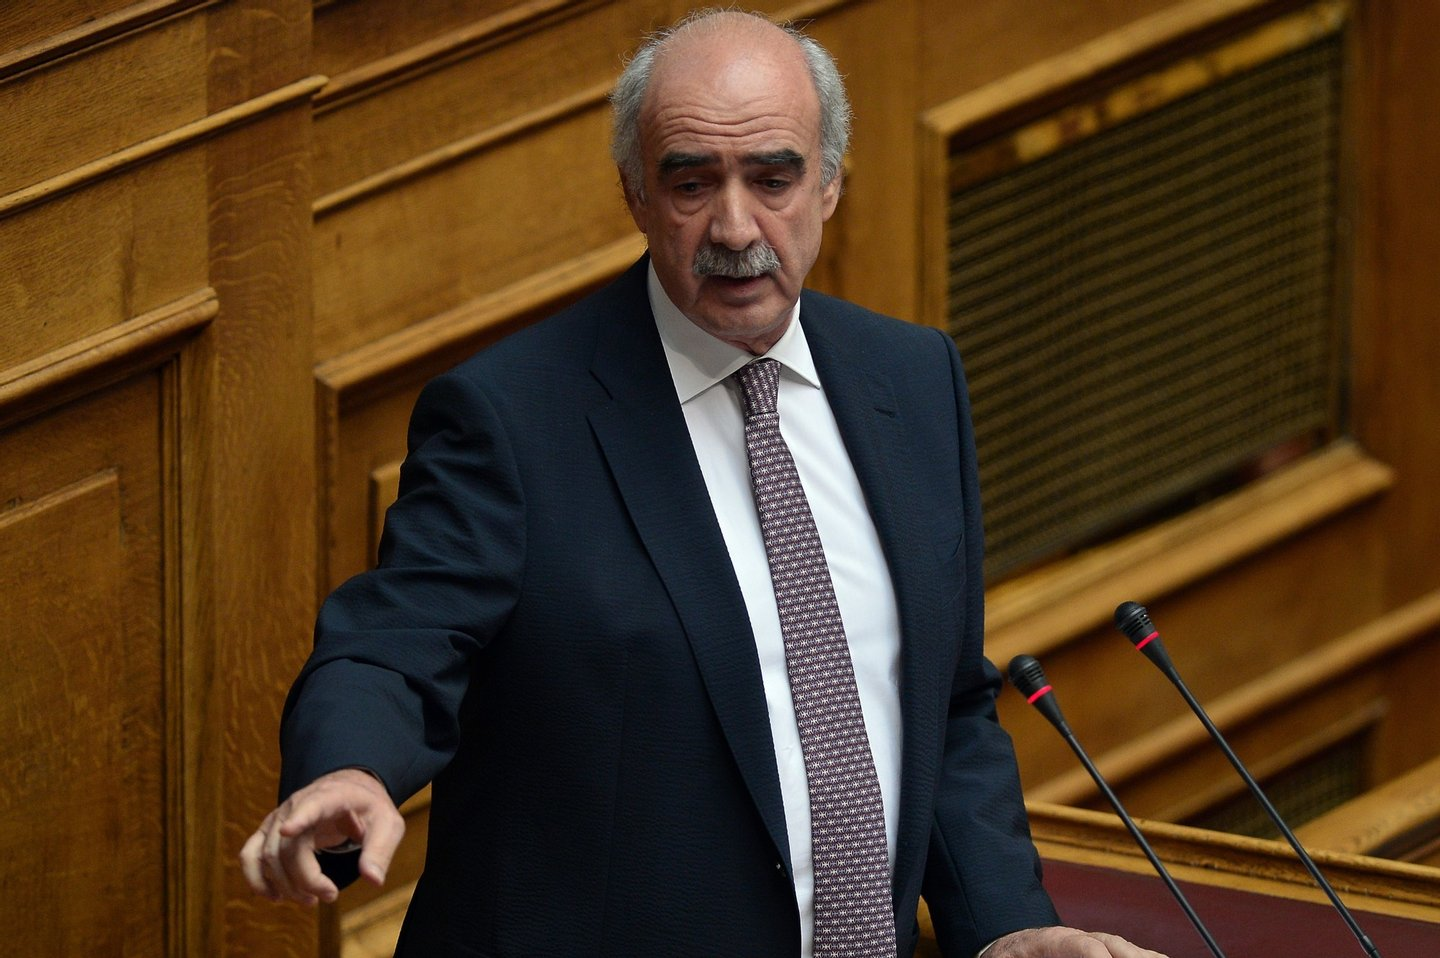 Greek New Democracy main opposition party leader Vangelis Meimarakis  addresses   a session at the  Greek parliament prior the vote in Athens early on July 23, 2015. Prime Minister Alexis Tsipras faced a new test of his authority in parliament on July 22, where MPs were to vote on a second batch of reforms to help unlock a bailout for Greece's stricken economy. The embattled premier last week faced a revolt by a fifth of the lawmakers in his radical-left Syriza party over changes to taxes, pensions and labour rules demanded by EU-IMF creditors. AFP PHOTO/ LOUISA GOULIAMAKI        (Photo credit should read LOUISA GOULIAMAKI/AFP/Getty Images)